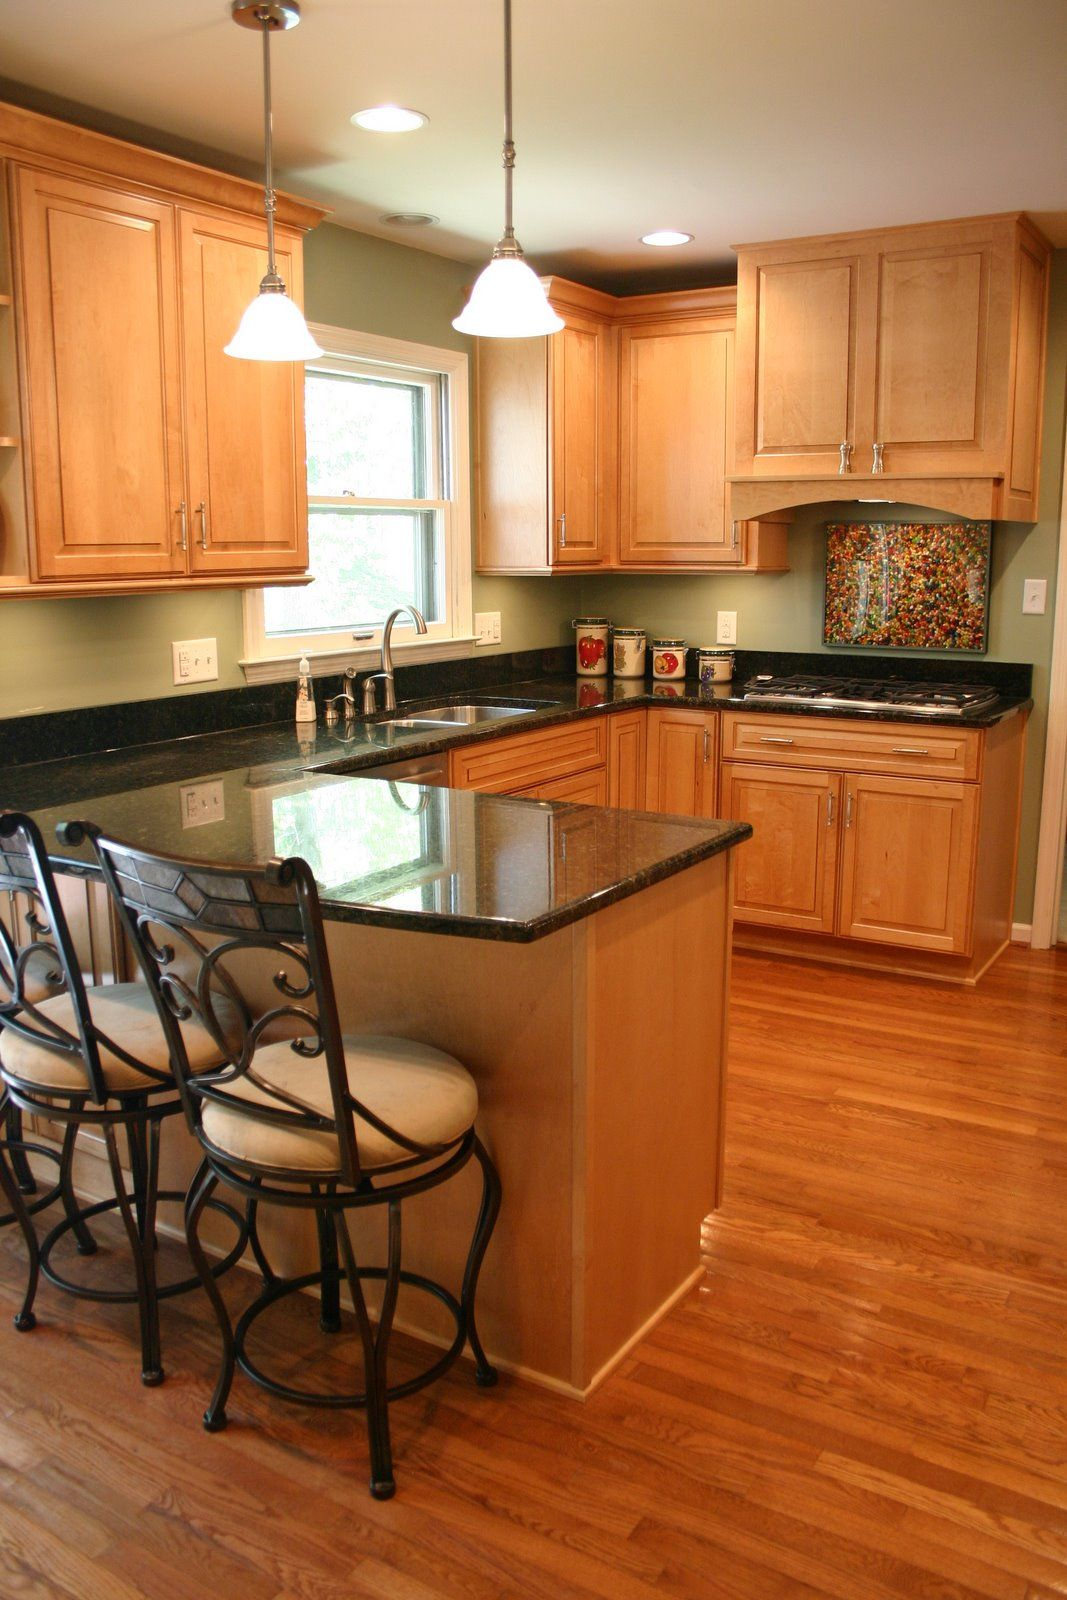 Color Scheme I Totally Love For A Kitchen Green Kitchen Walls Kitchen Design Kitchen Wall Colors